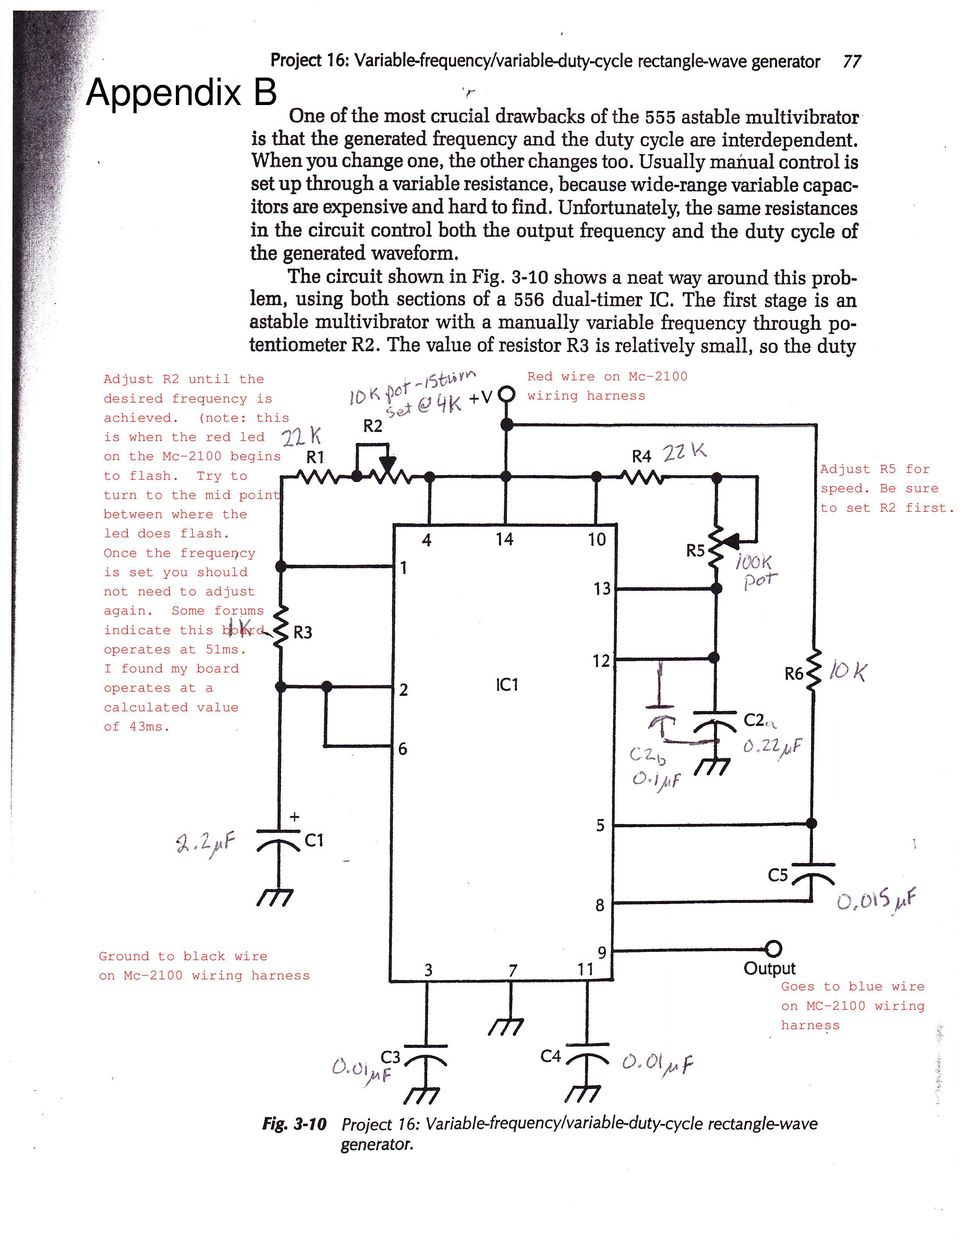 Pwm Circuit For Mc 2100 Motor Controller Board Pdf Unfortunately The Diagrams Do Not Show Internal Circuitry Of Usually Manual Control Is Set Up Through A Variable Resistance Because Wide Range Rnriable